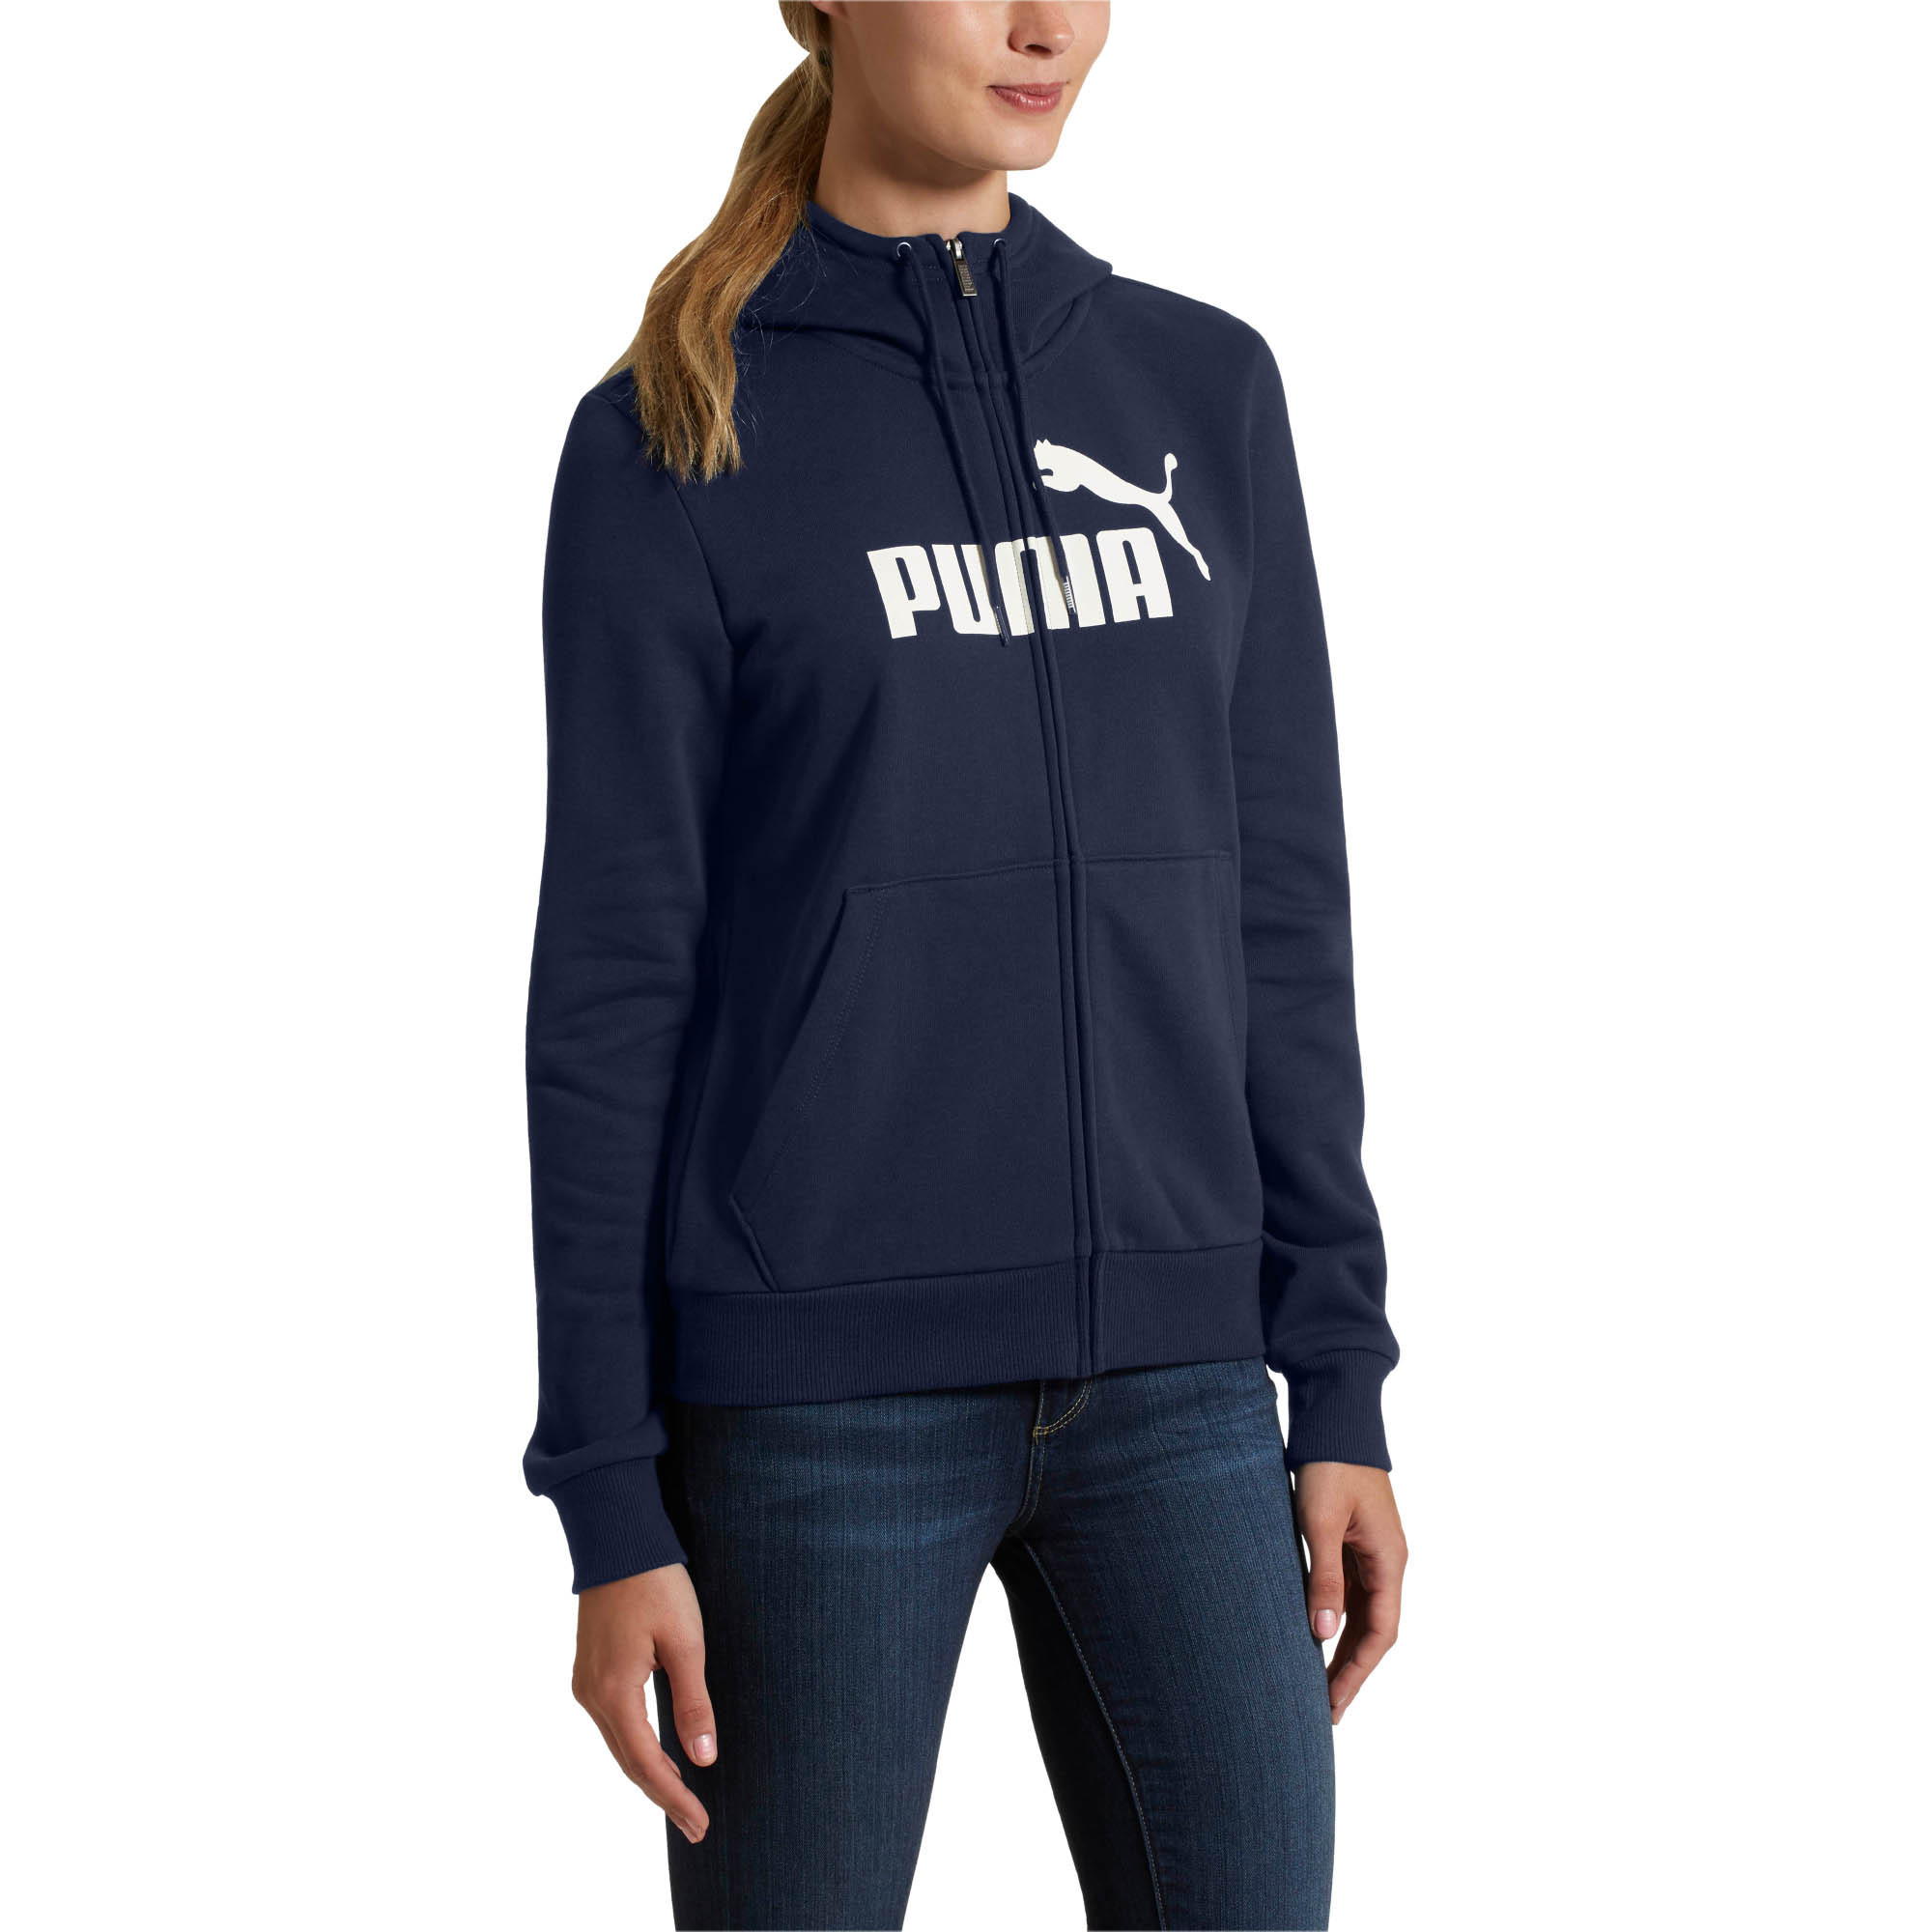 PUMA-Women-039-s-Essential-Fleece-Hooded-Jacket-Women-Sweat-Basics thumbnail 15